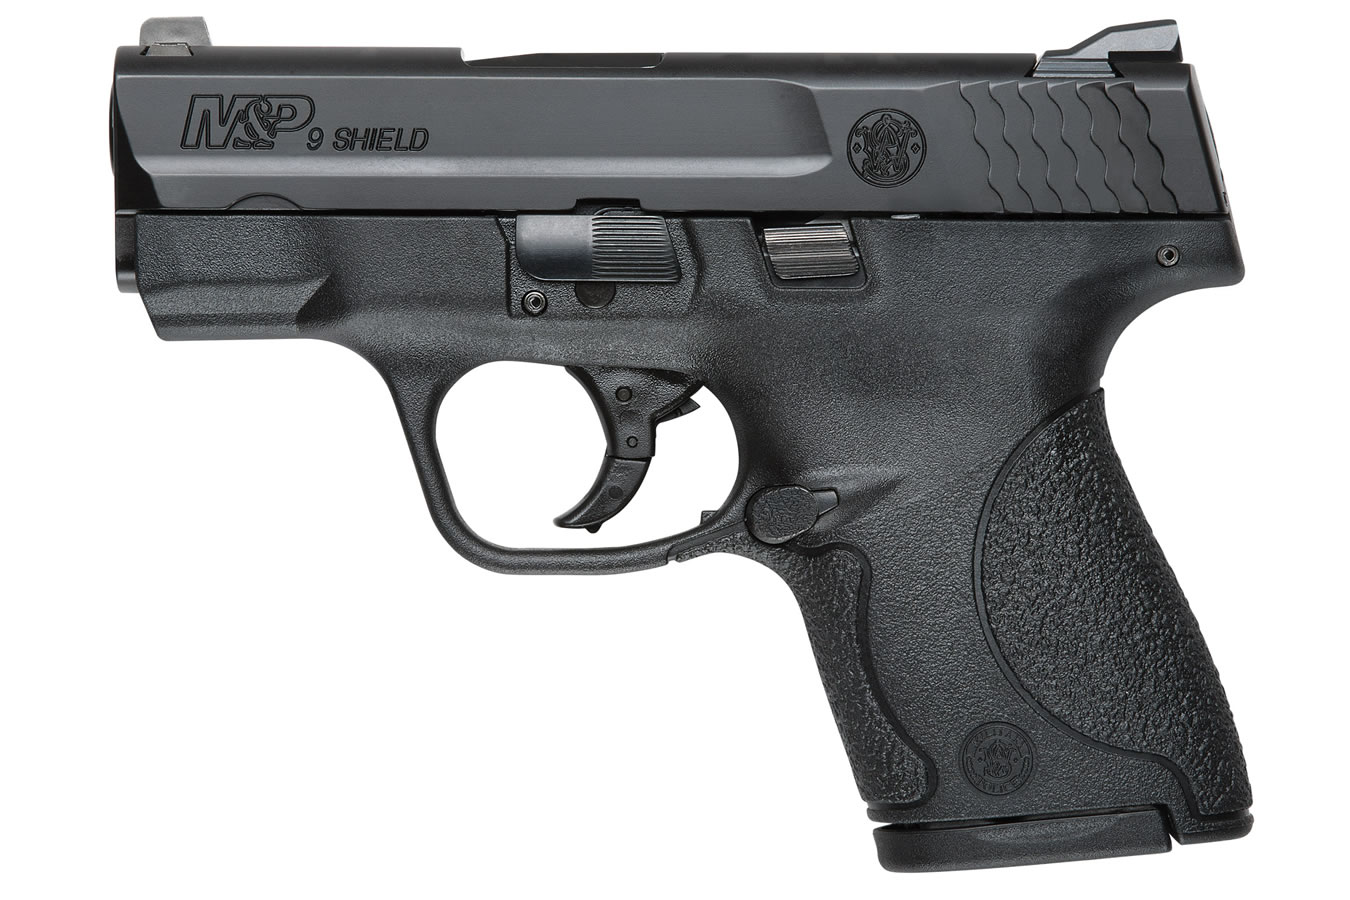 No. 1 Best Selling: SMITH AND WESSON MP9 SHIELD 9MM PISTOL NO THUMB SAFETY